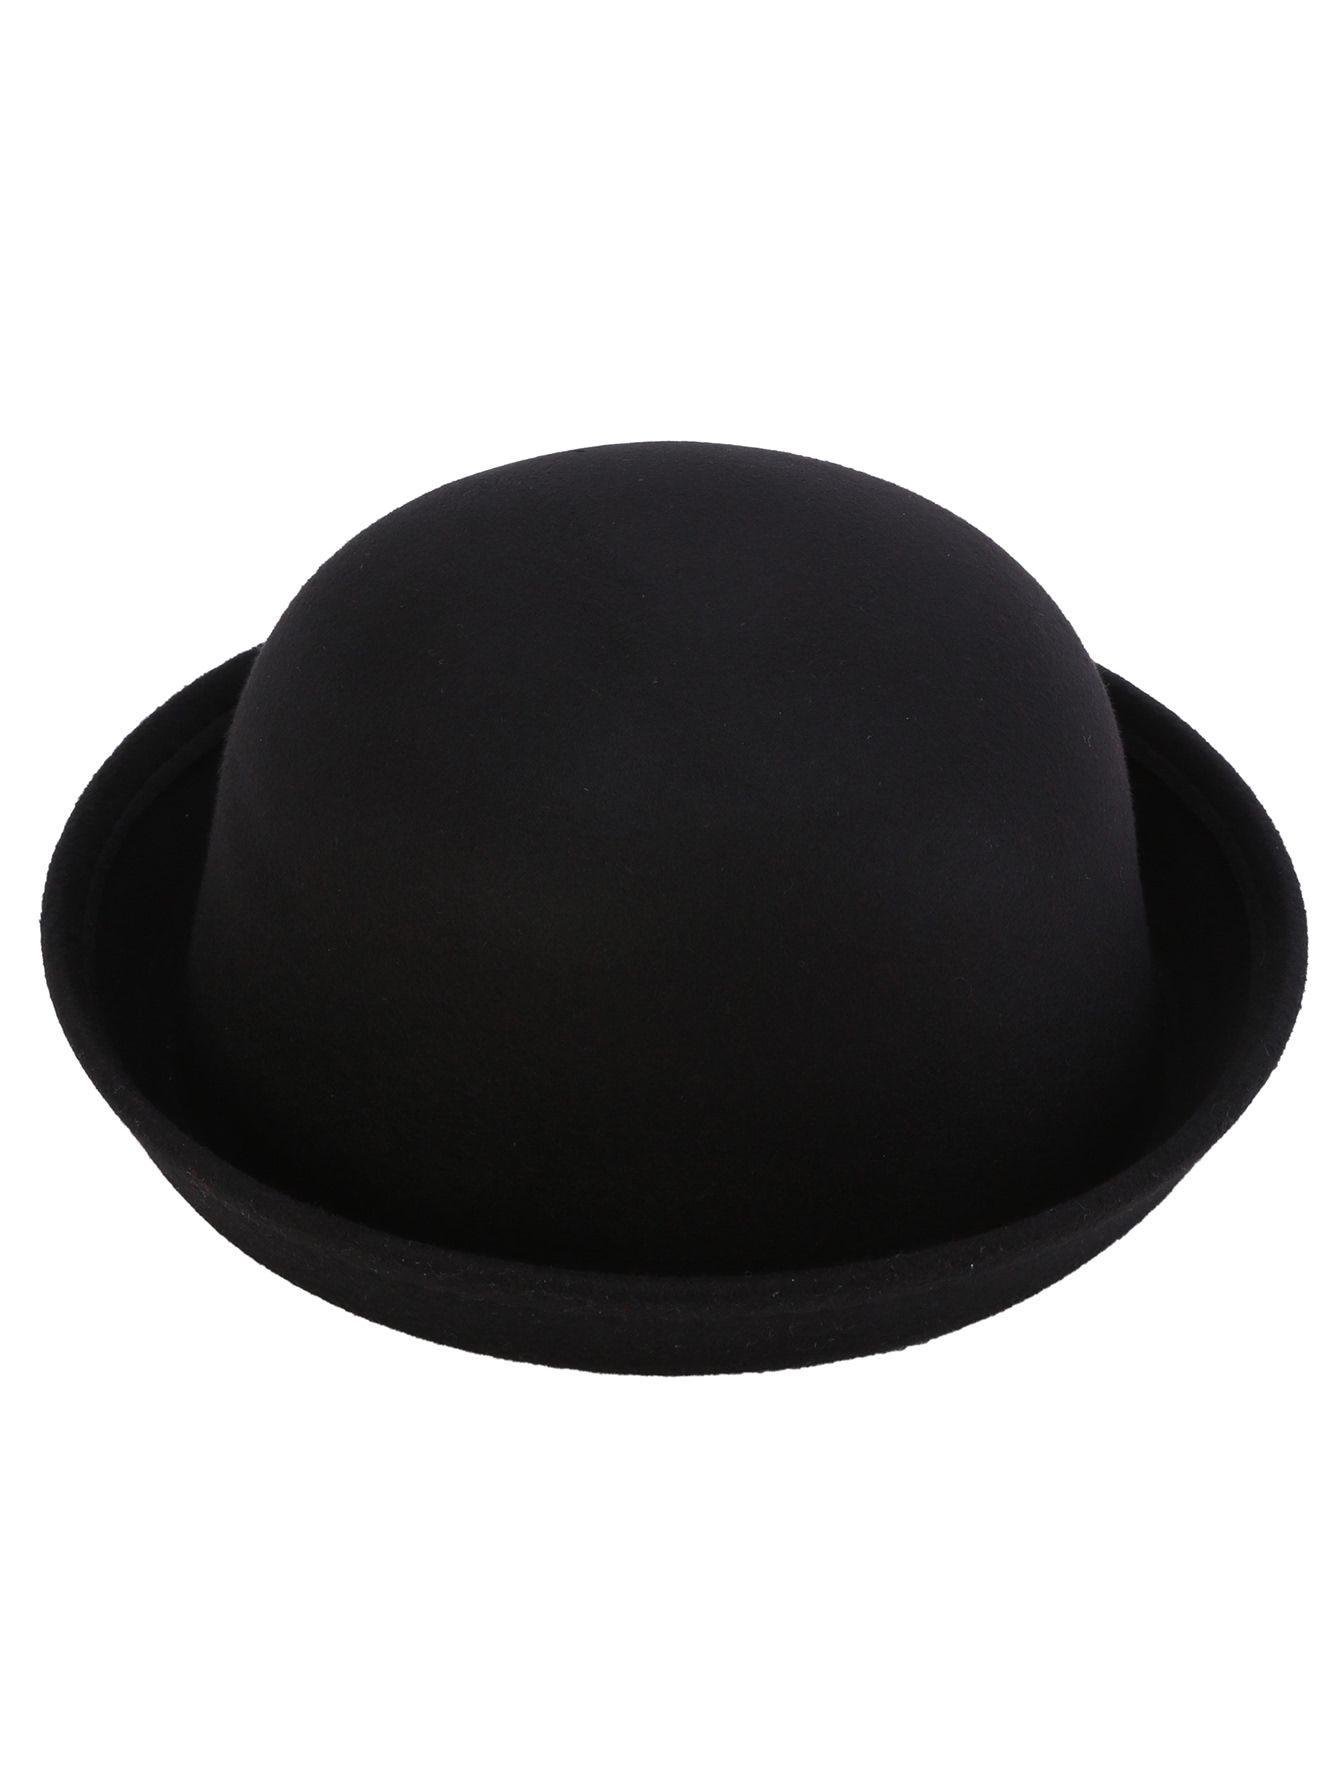 a02f48514c766 Shop Black Vintage Felt Bowler Hat online. SheIn offers Black Vintage Felt  Bowler Hat   more to fit your fashionable needs.